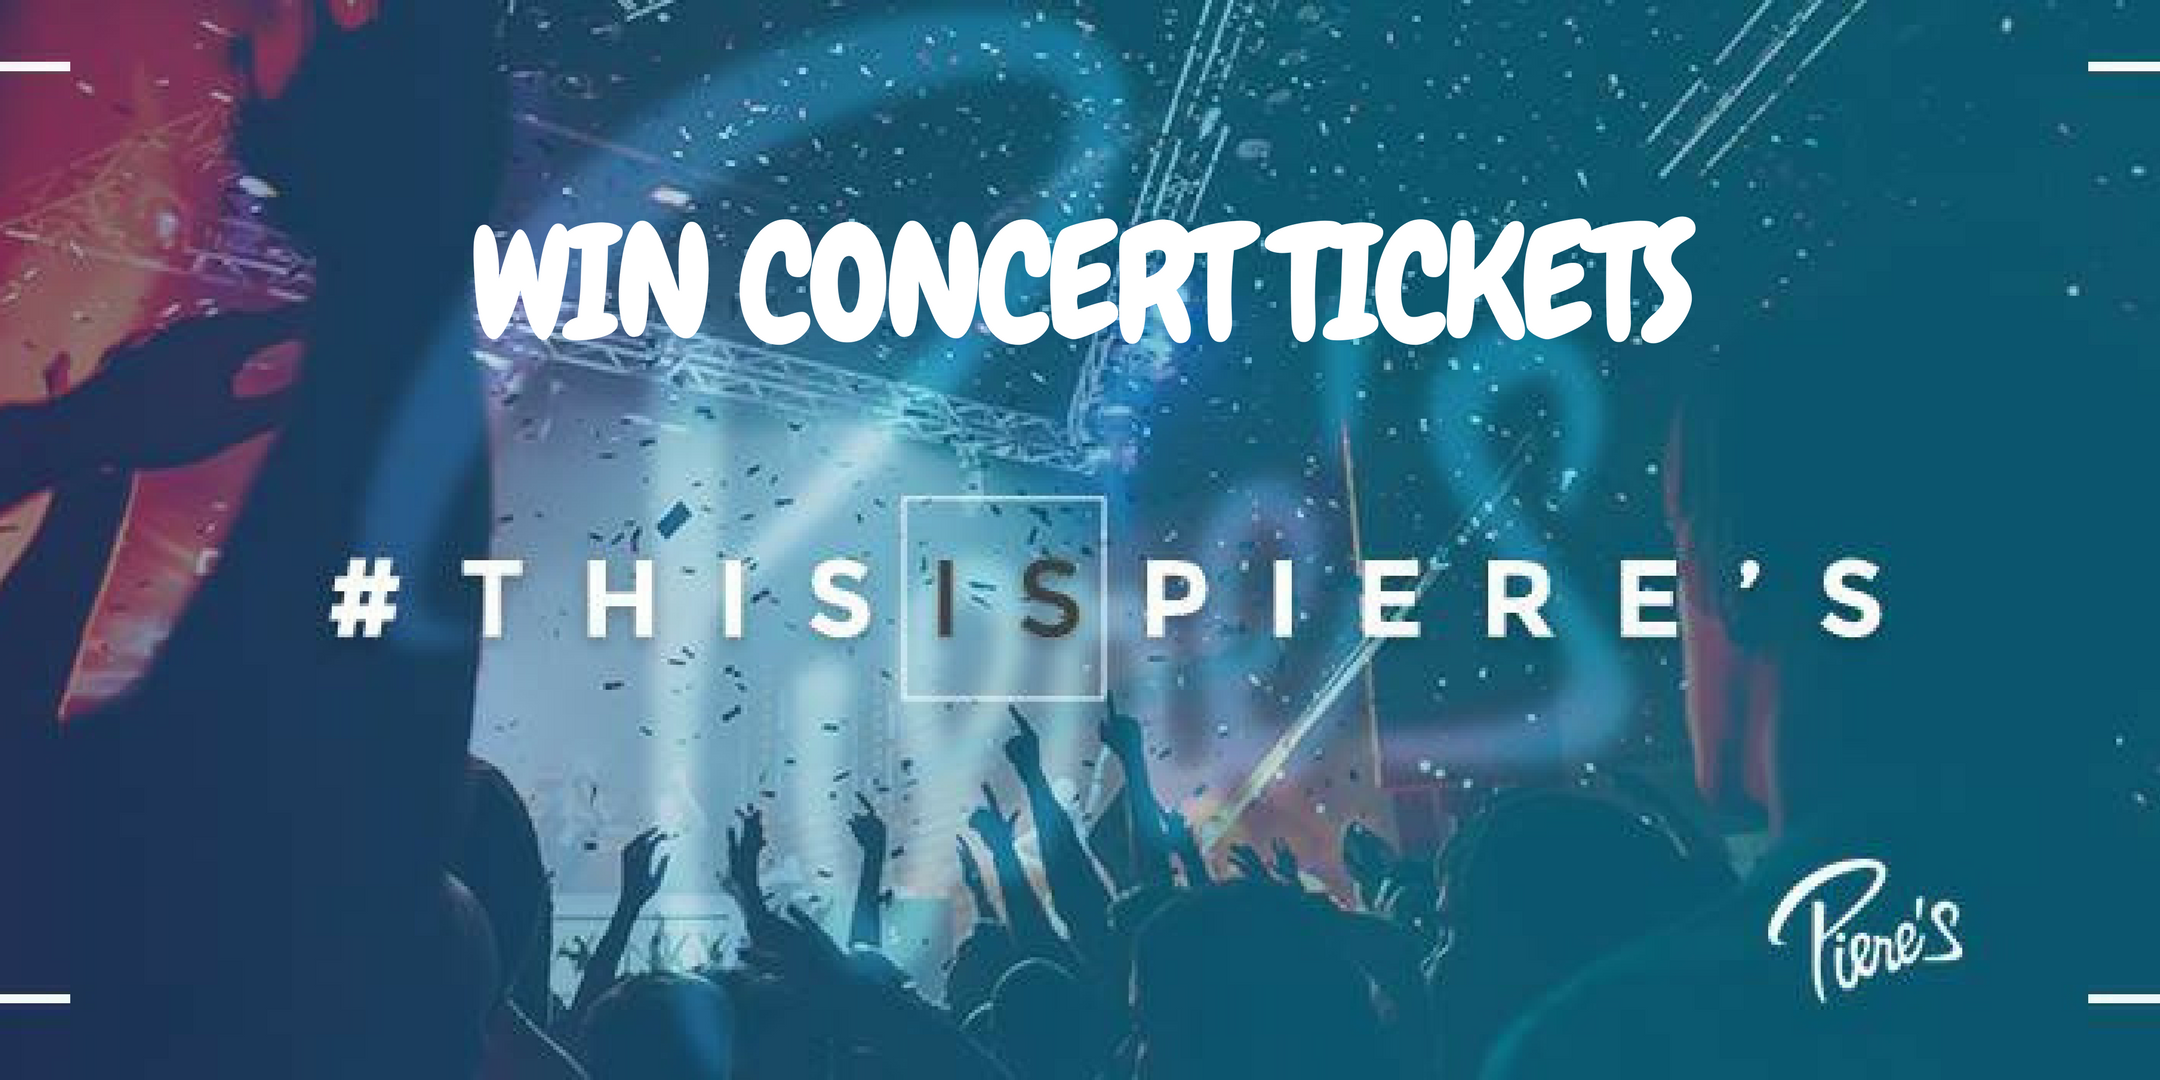 Win Piere's Concert Tickets!